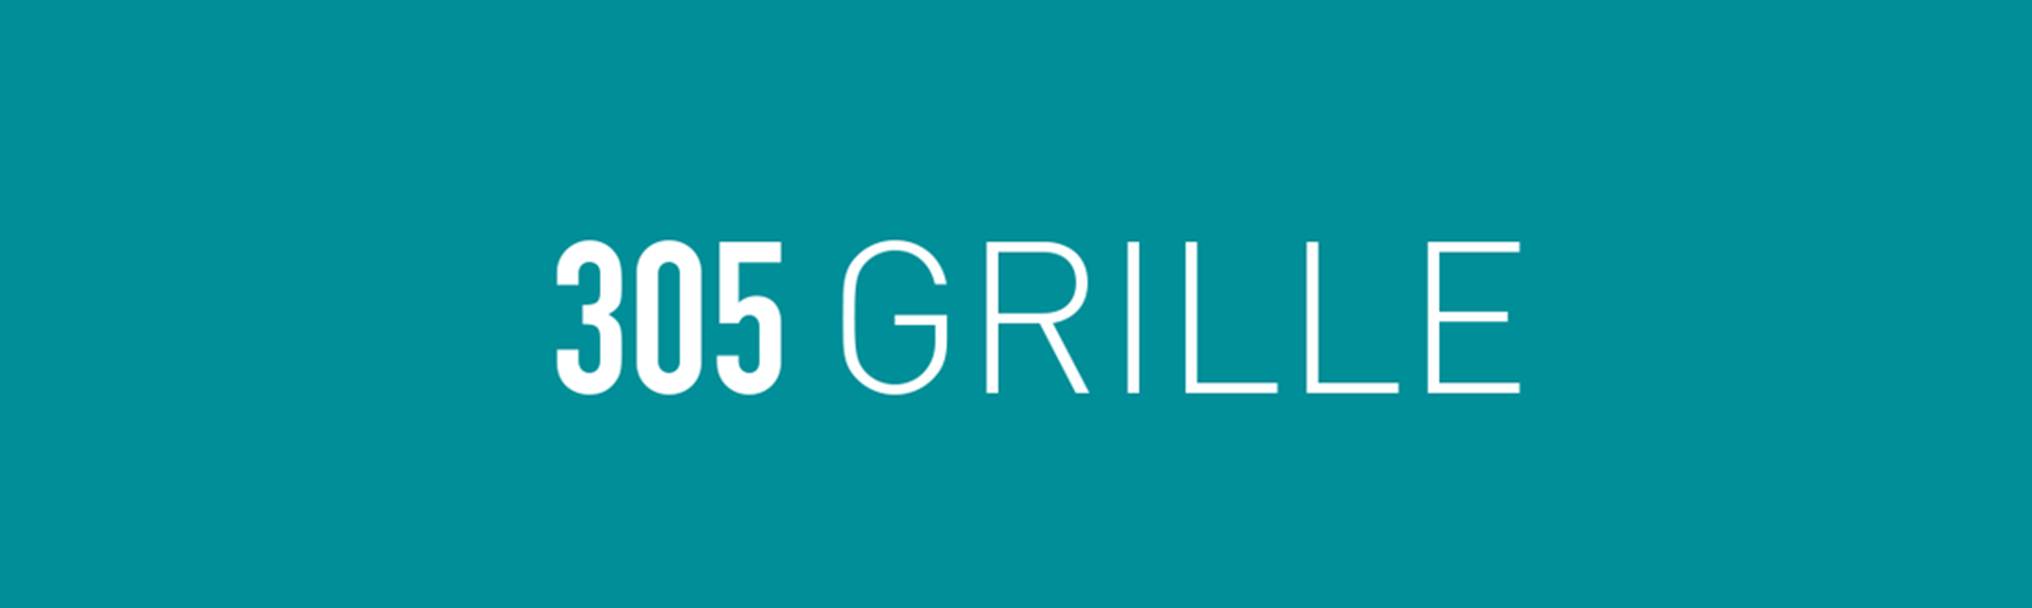 305 grille.png